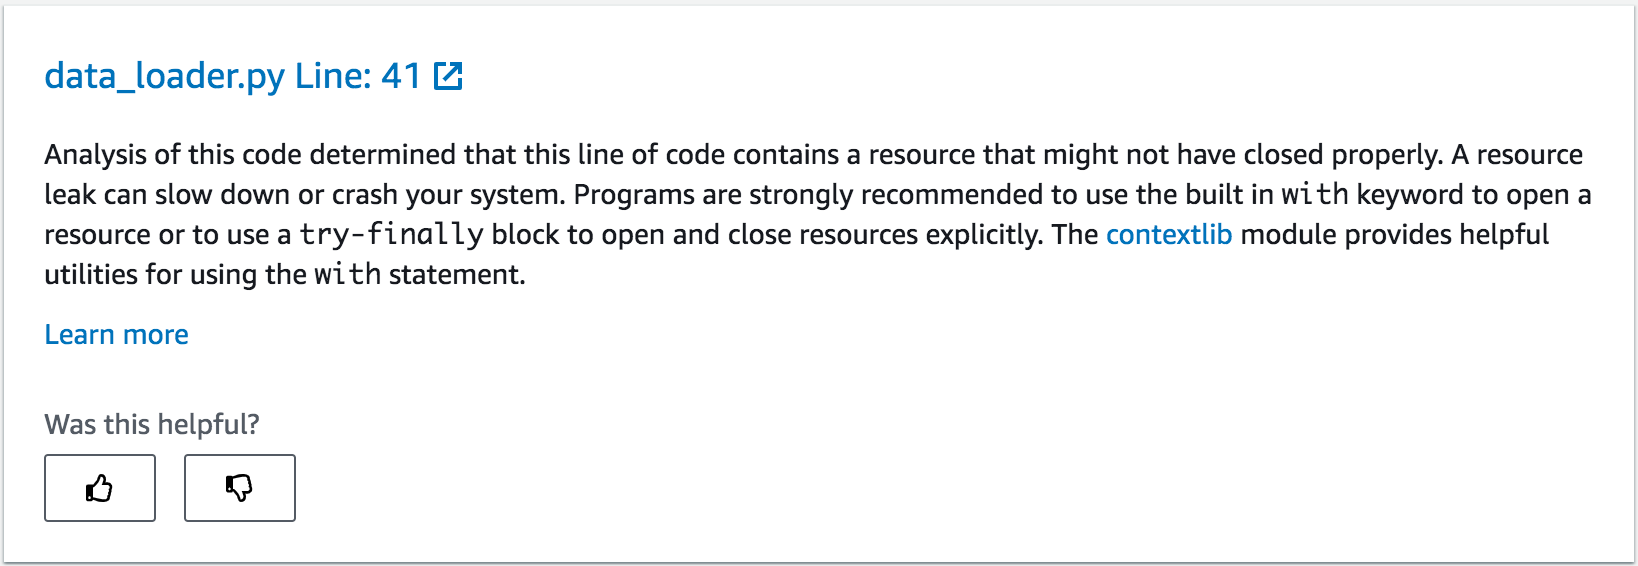 The following screenshot shows CodeGuru Reviewer recommend about fixing the potential resource leak